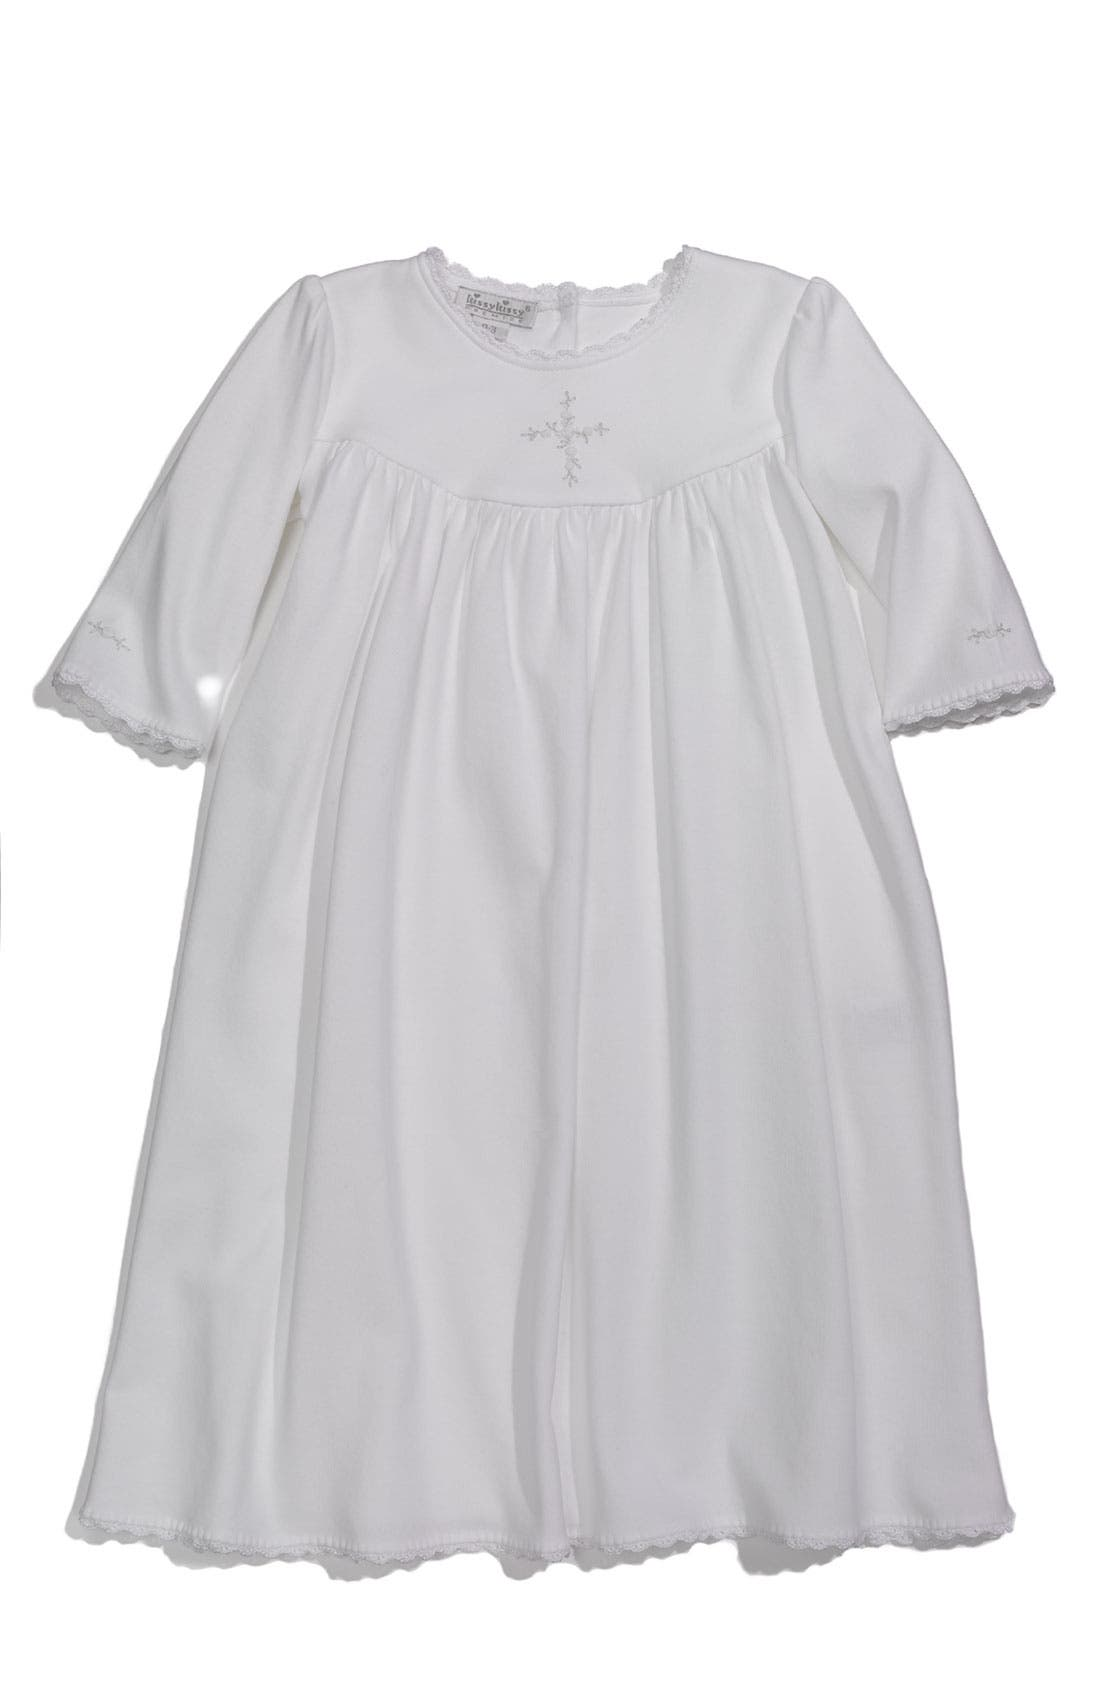 Main Image - Kissy Kissy 'Hope's Cross' Gown (Infant)